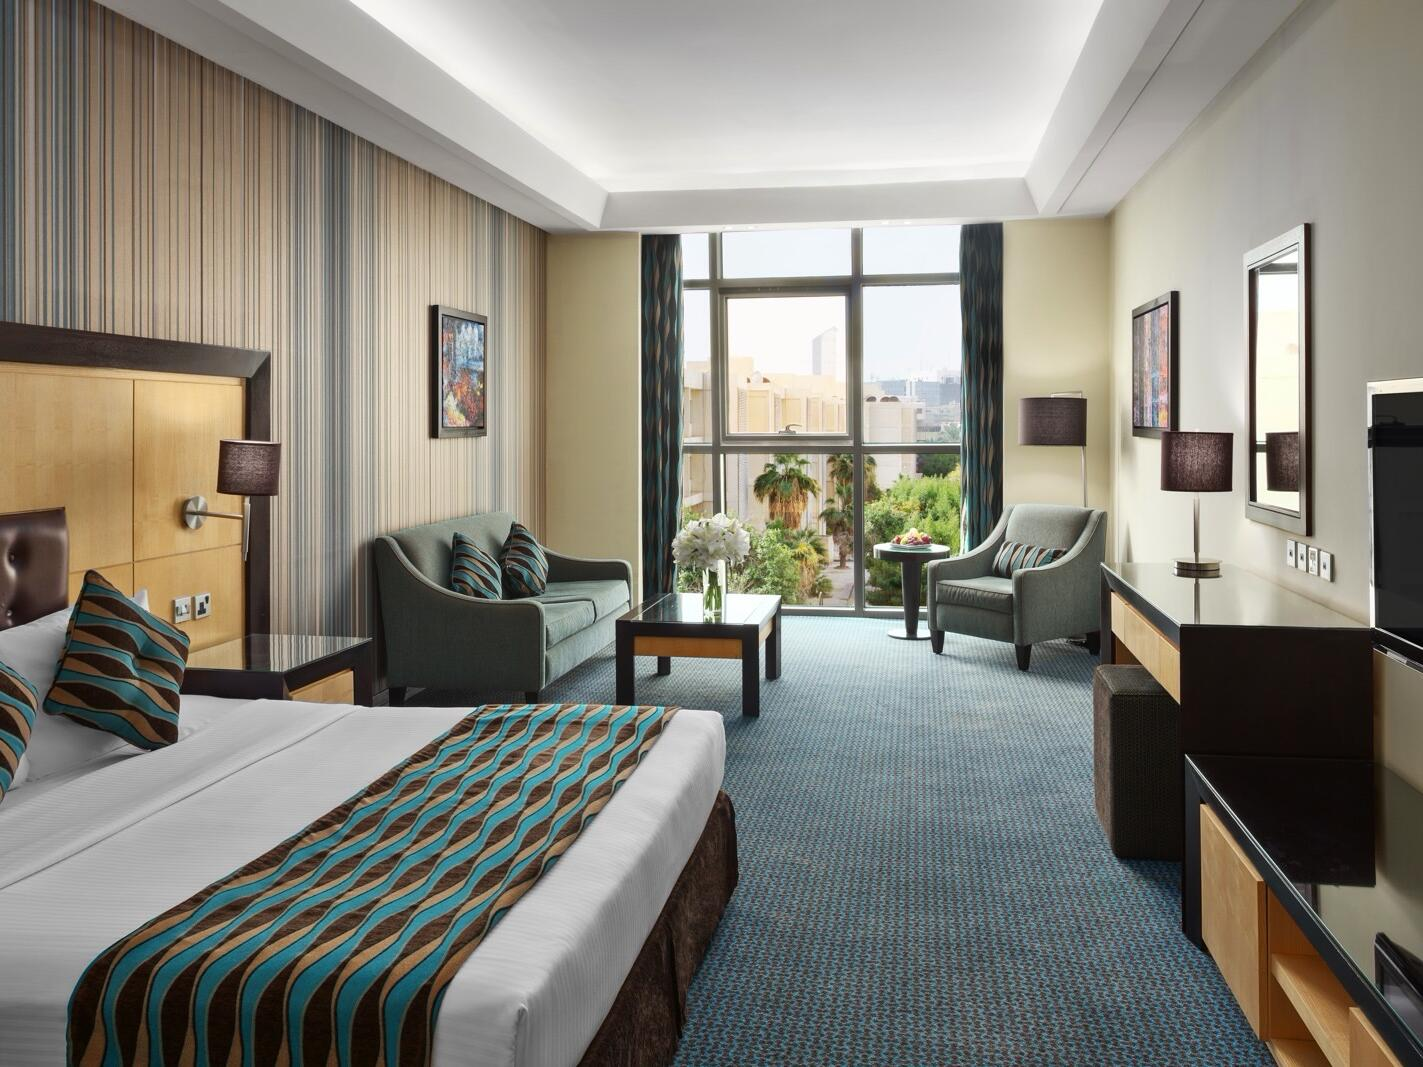 Deluxe Room at RAND by Wandalus in Riyadh